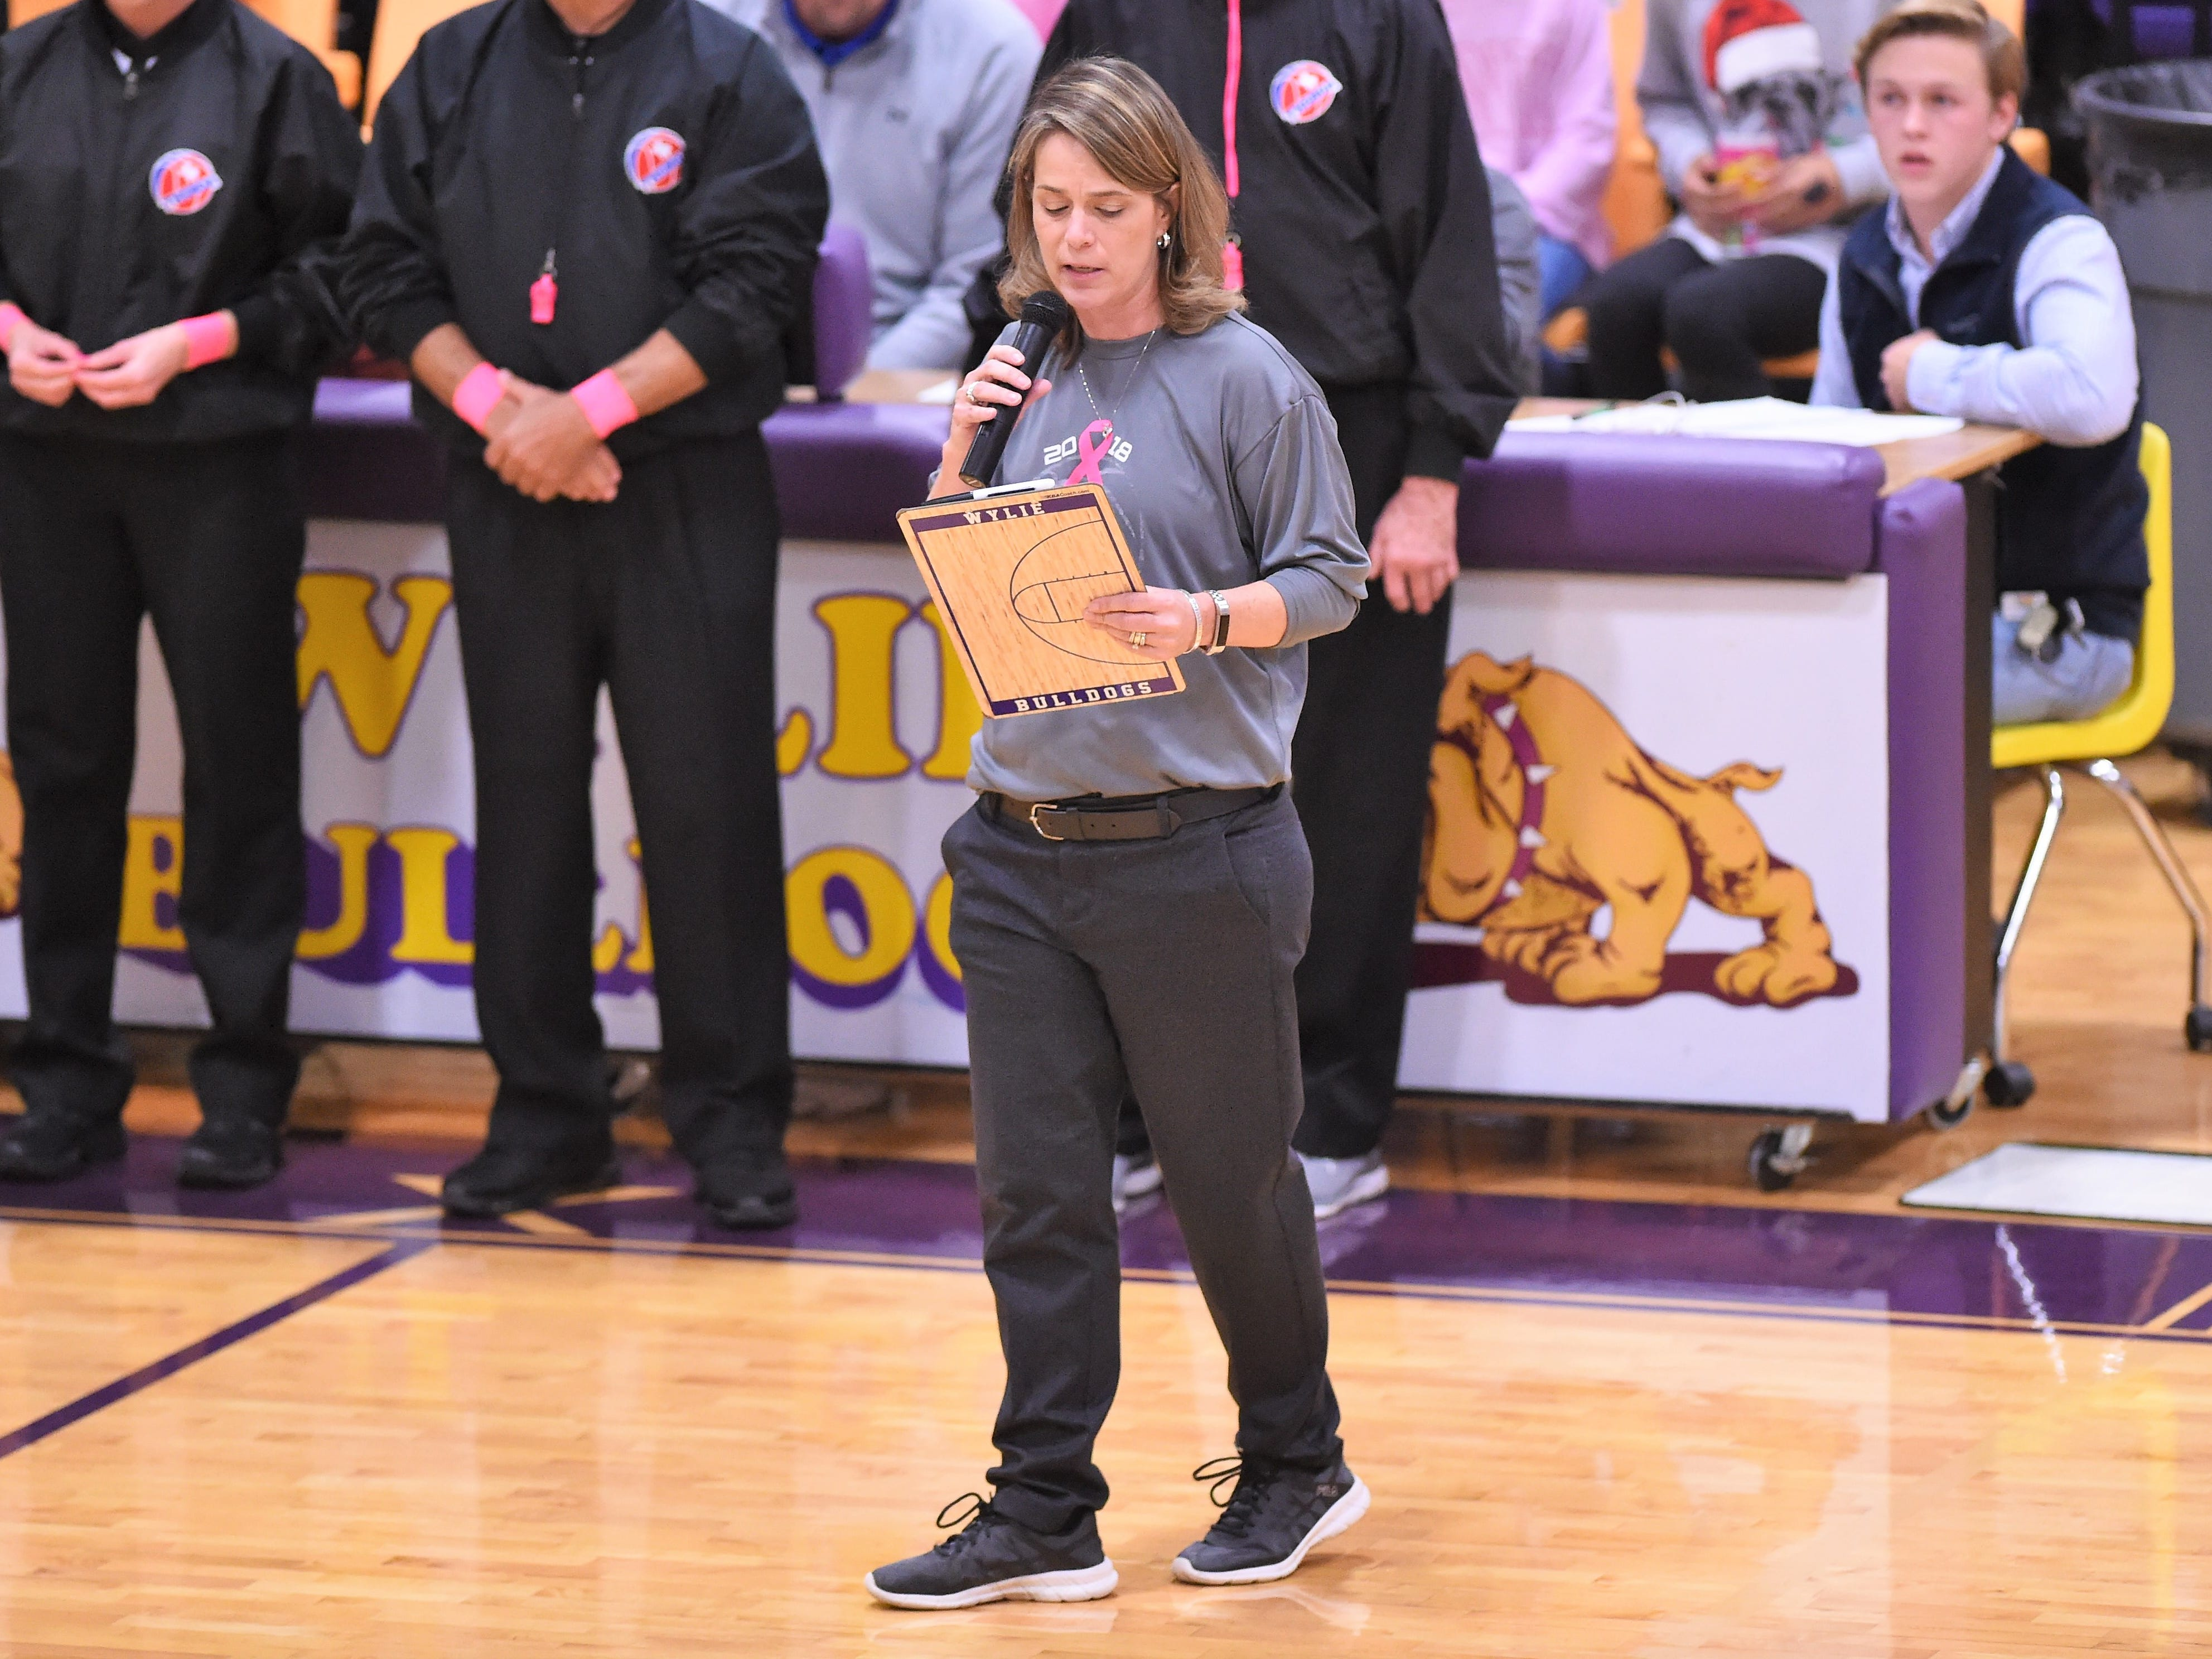 Wylie coach Amy Powell speaks before the Lady Bulldogs faced Merkel in a Coaches vs. Cancer Pink Out game at Bulldog Gym on Tuesday, Dec. 4, 2018.